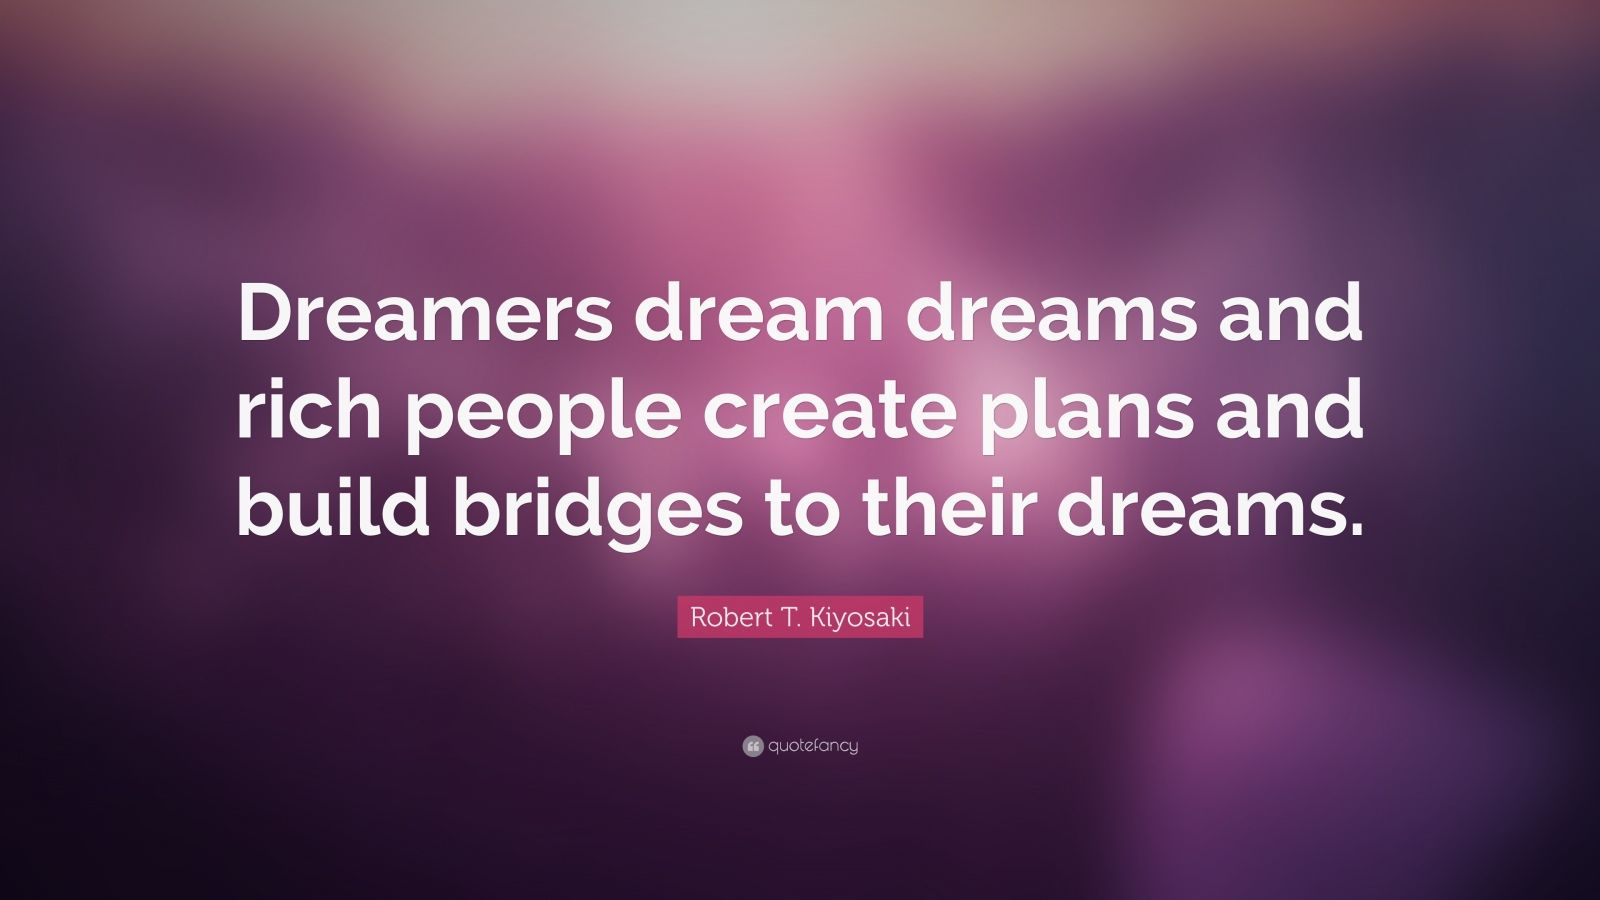 """Robert T. Kiyosaki Quote: """"Dreamers dream dreams and rich people create plans and build bridges to their dreams."""""""